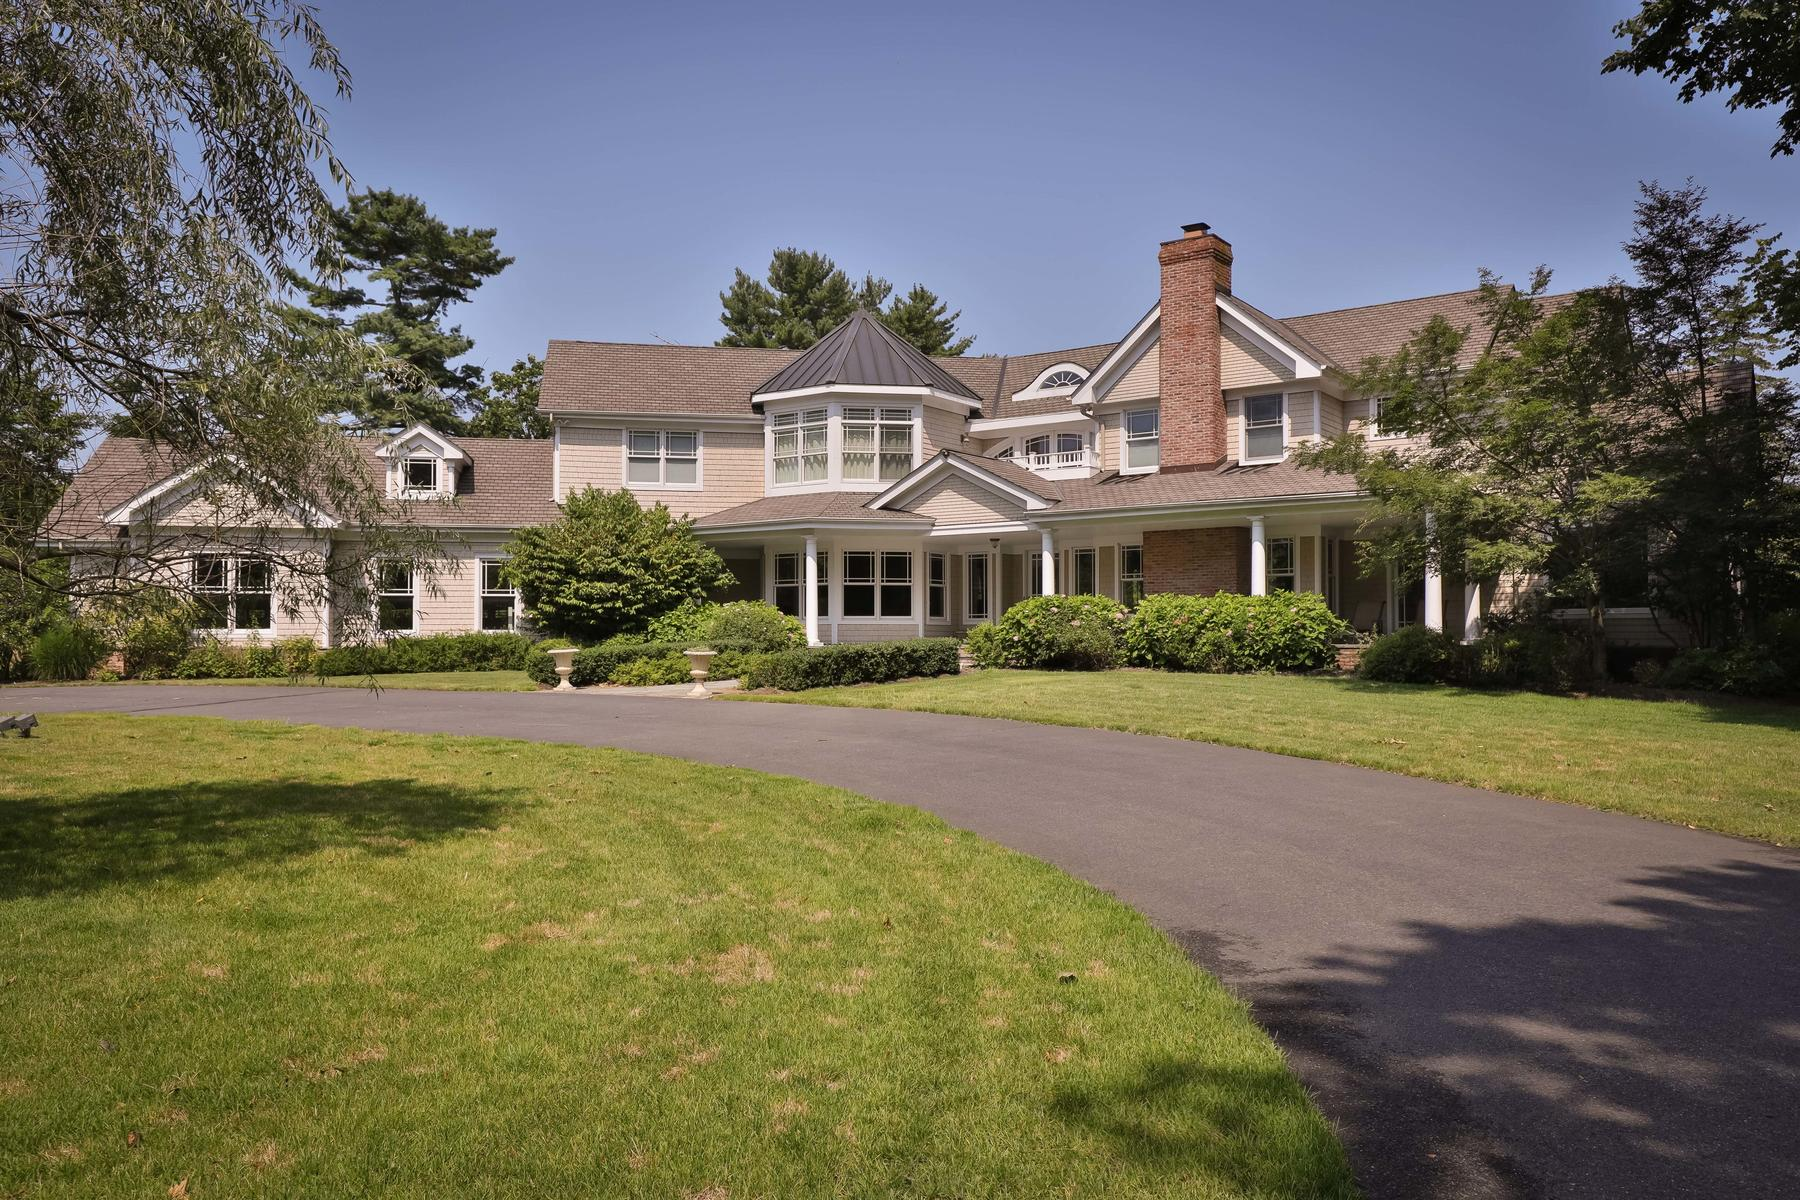 Single Family Homes for Sale at Custom Colonial in Rumson 90 Rumson Road Rumson, New Jersey 07760 United States